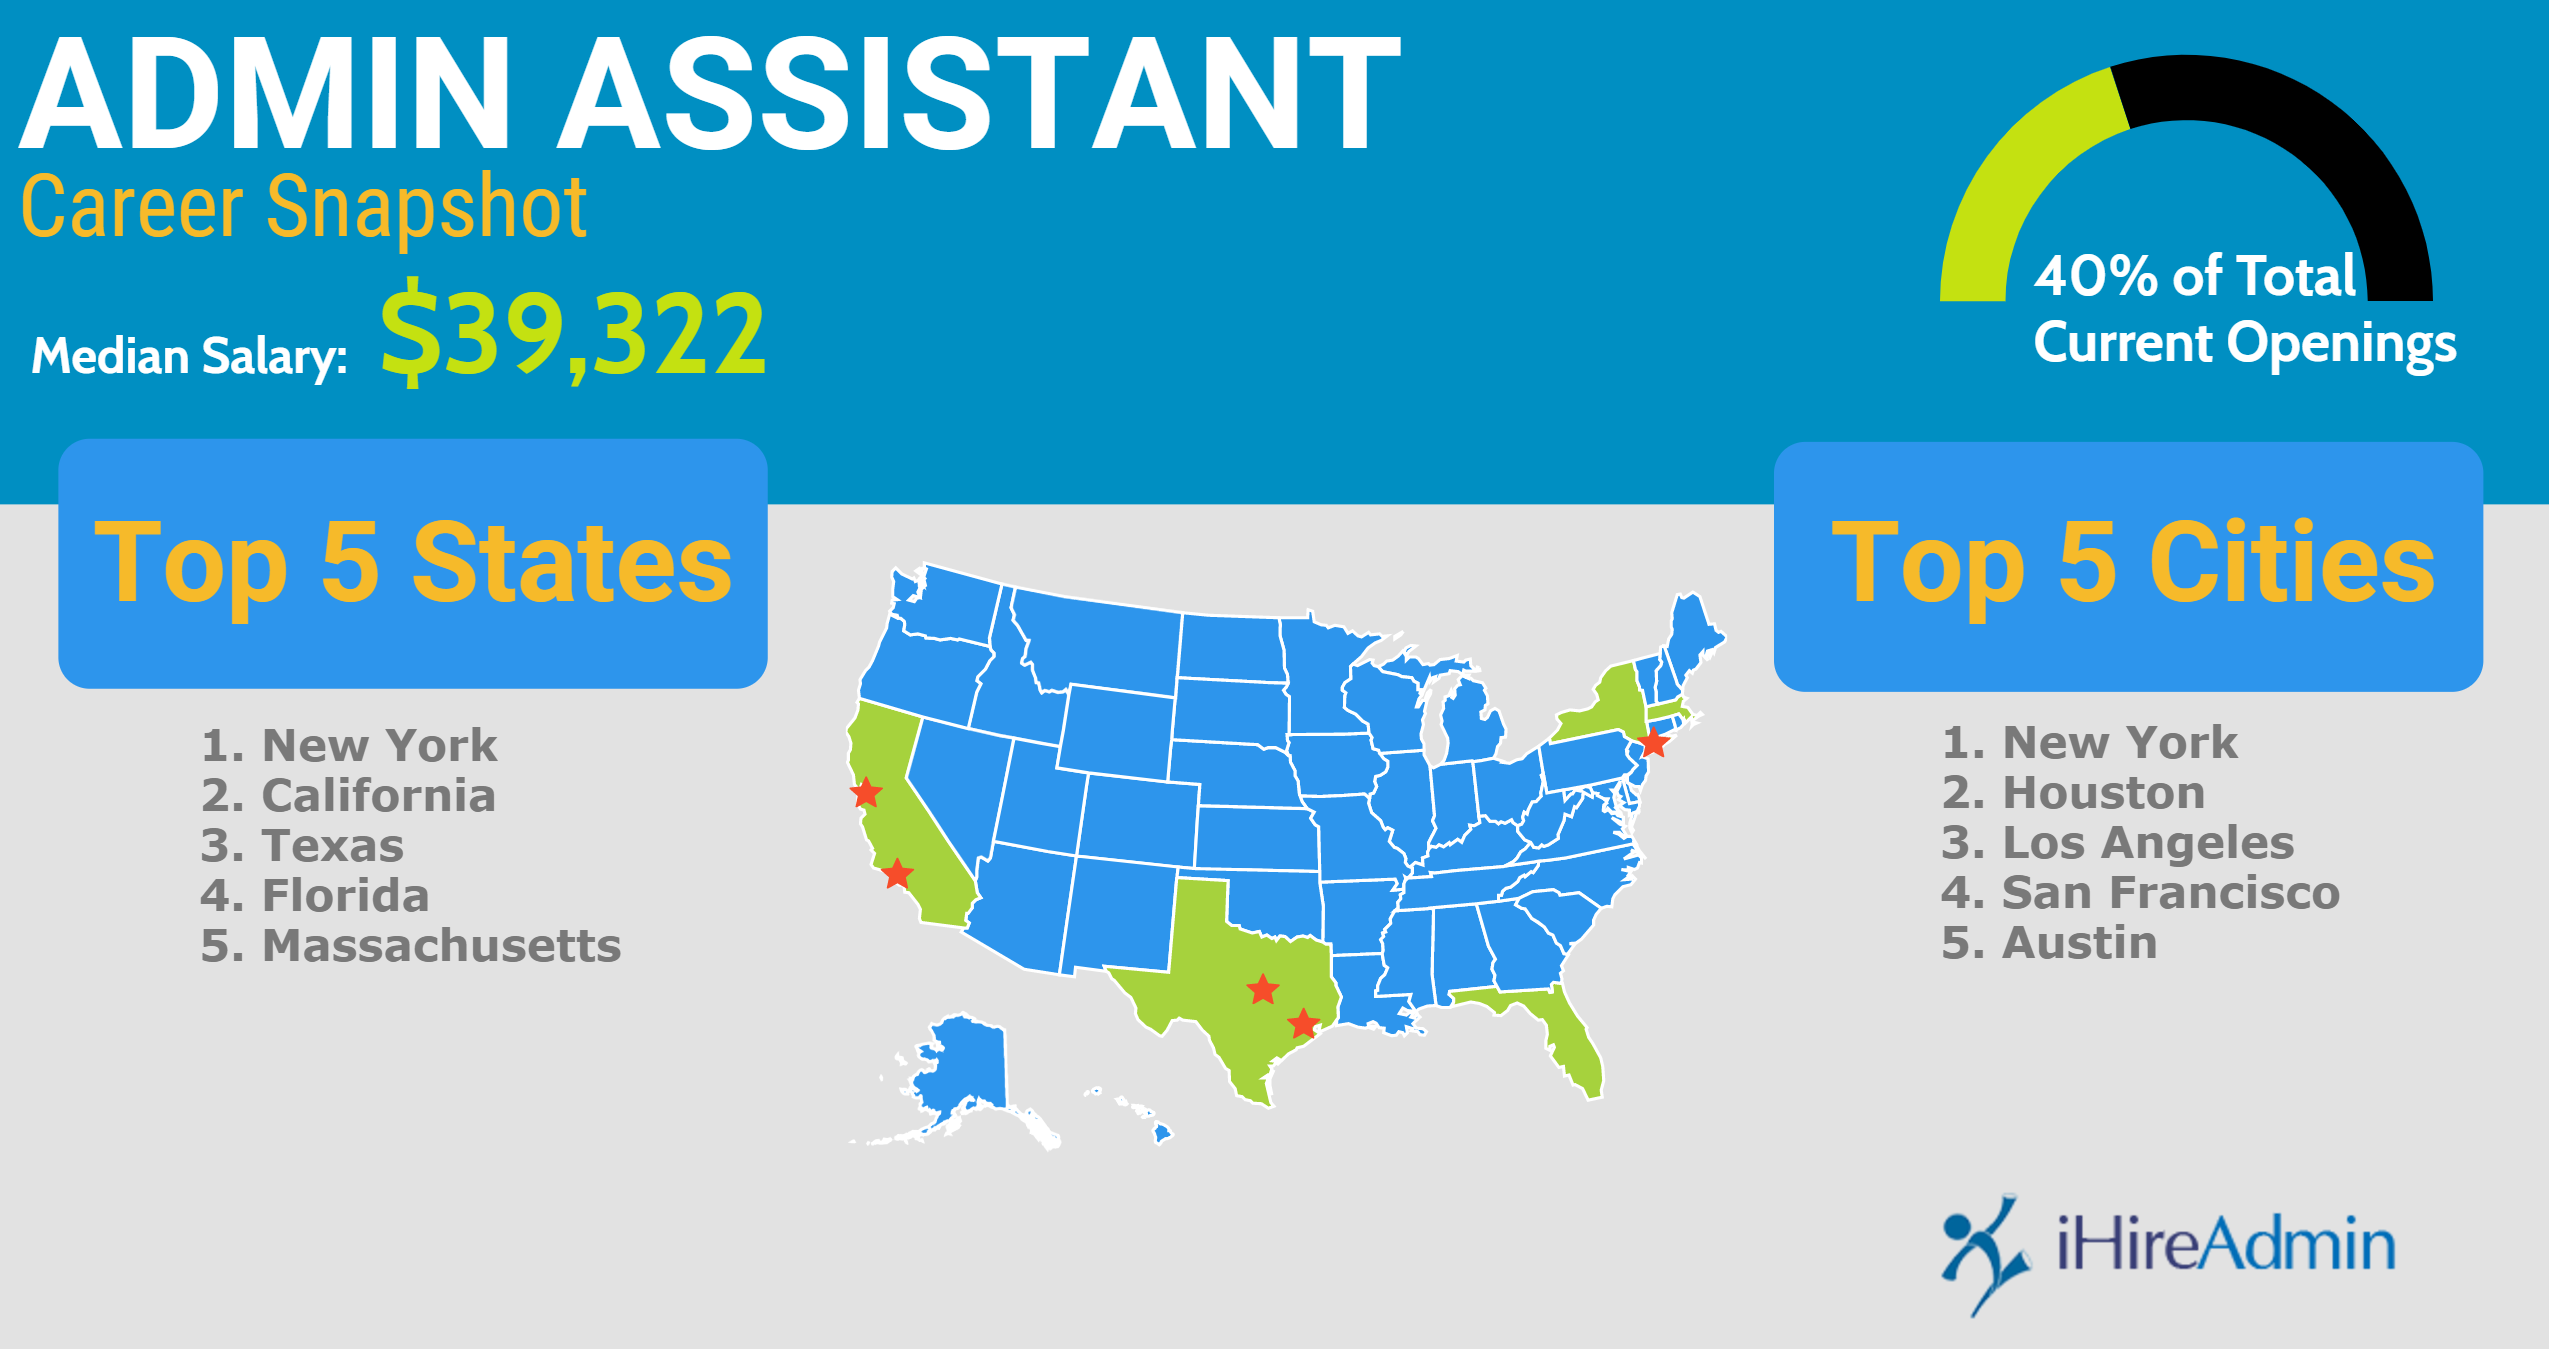 Administrative assistant career snapshot infographic